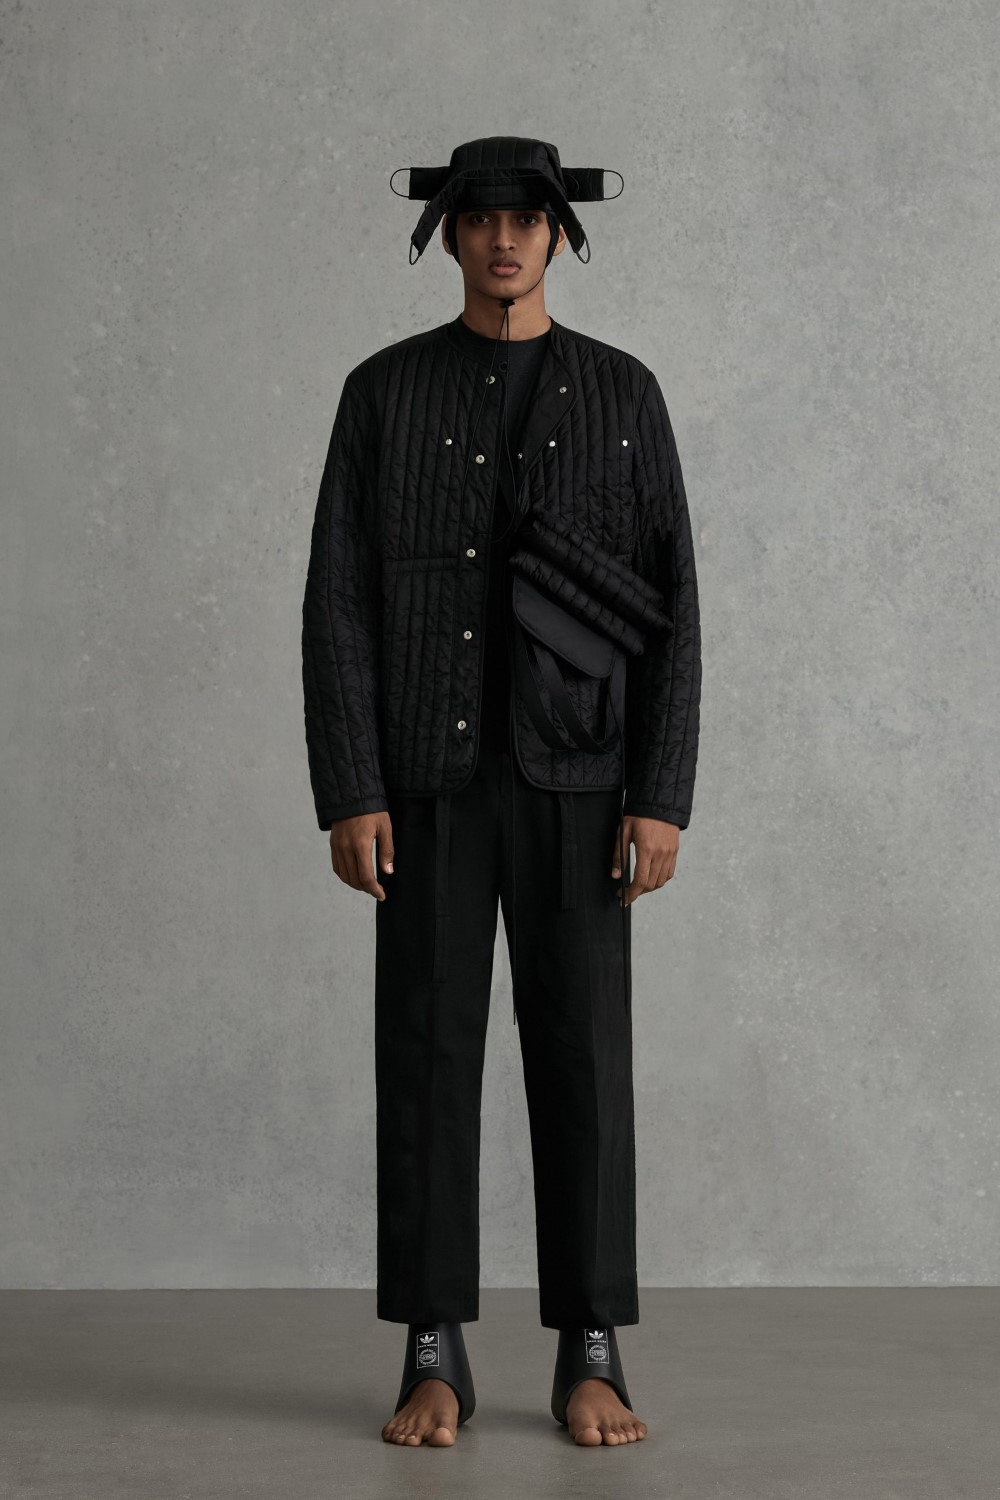 Craig Green Spring-Summer 2021 Lookbook